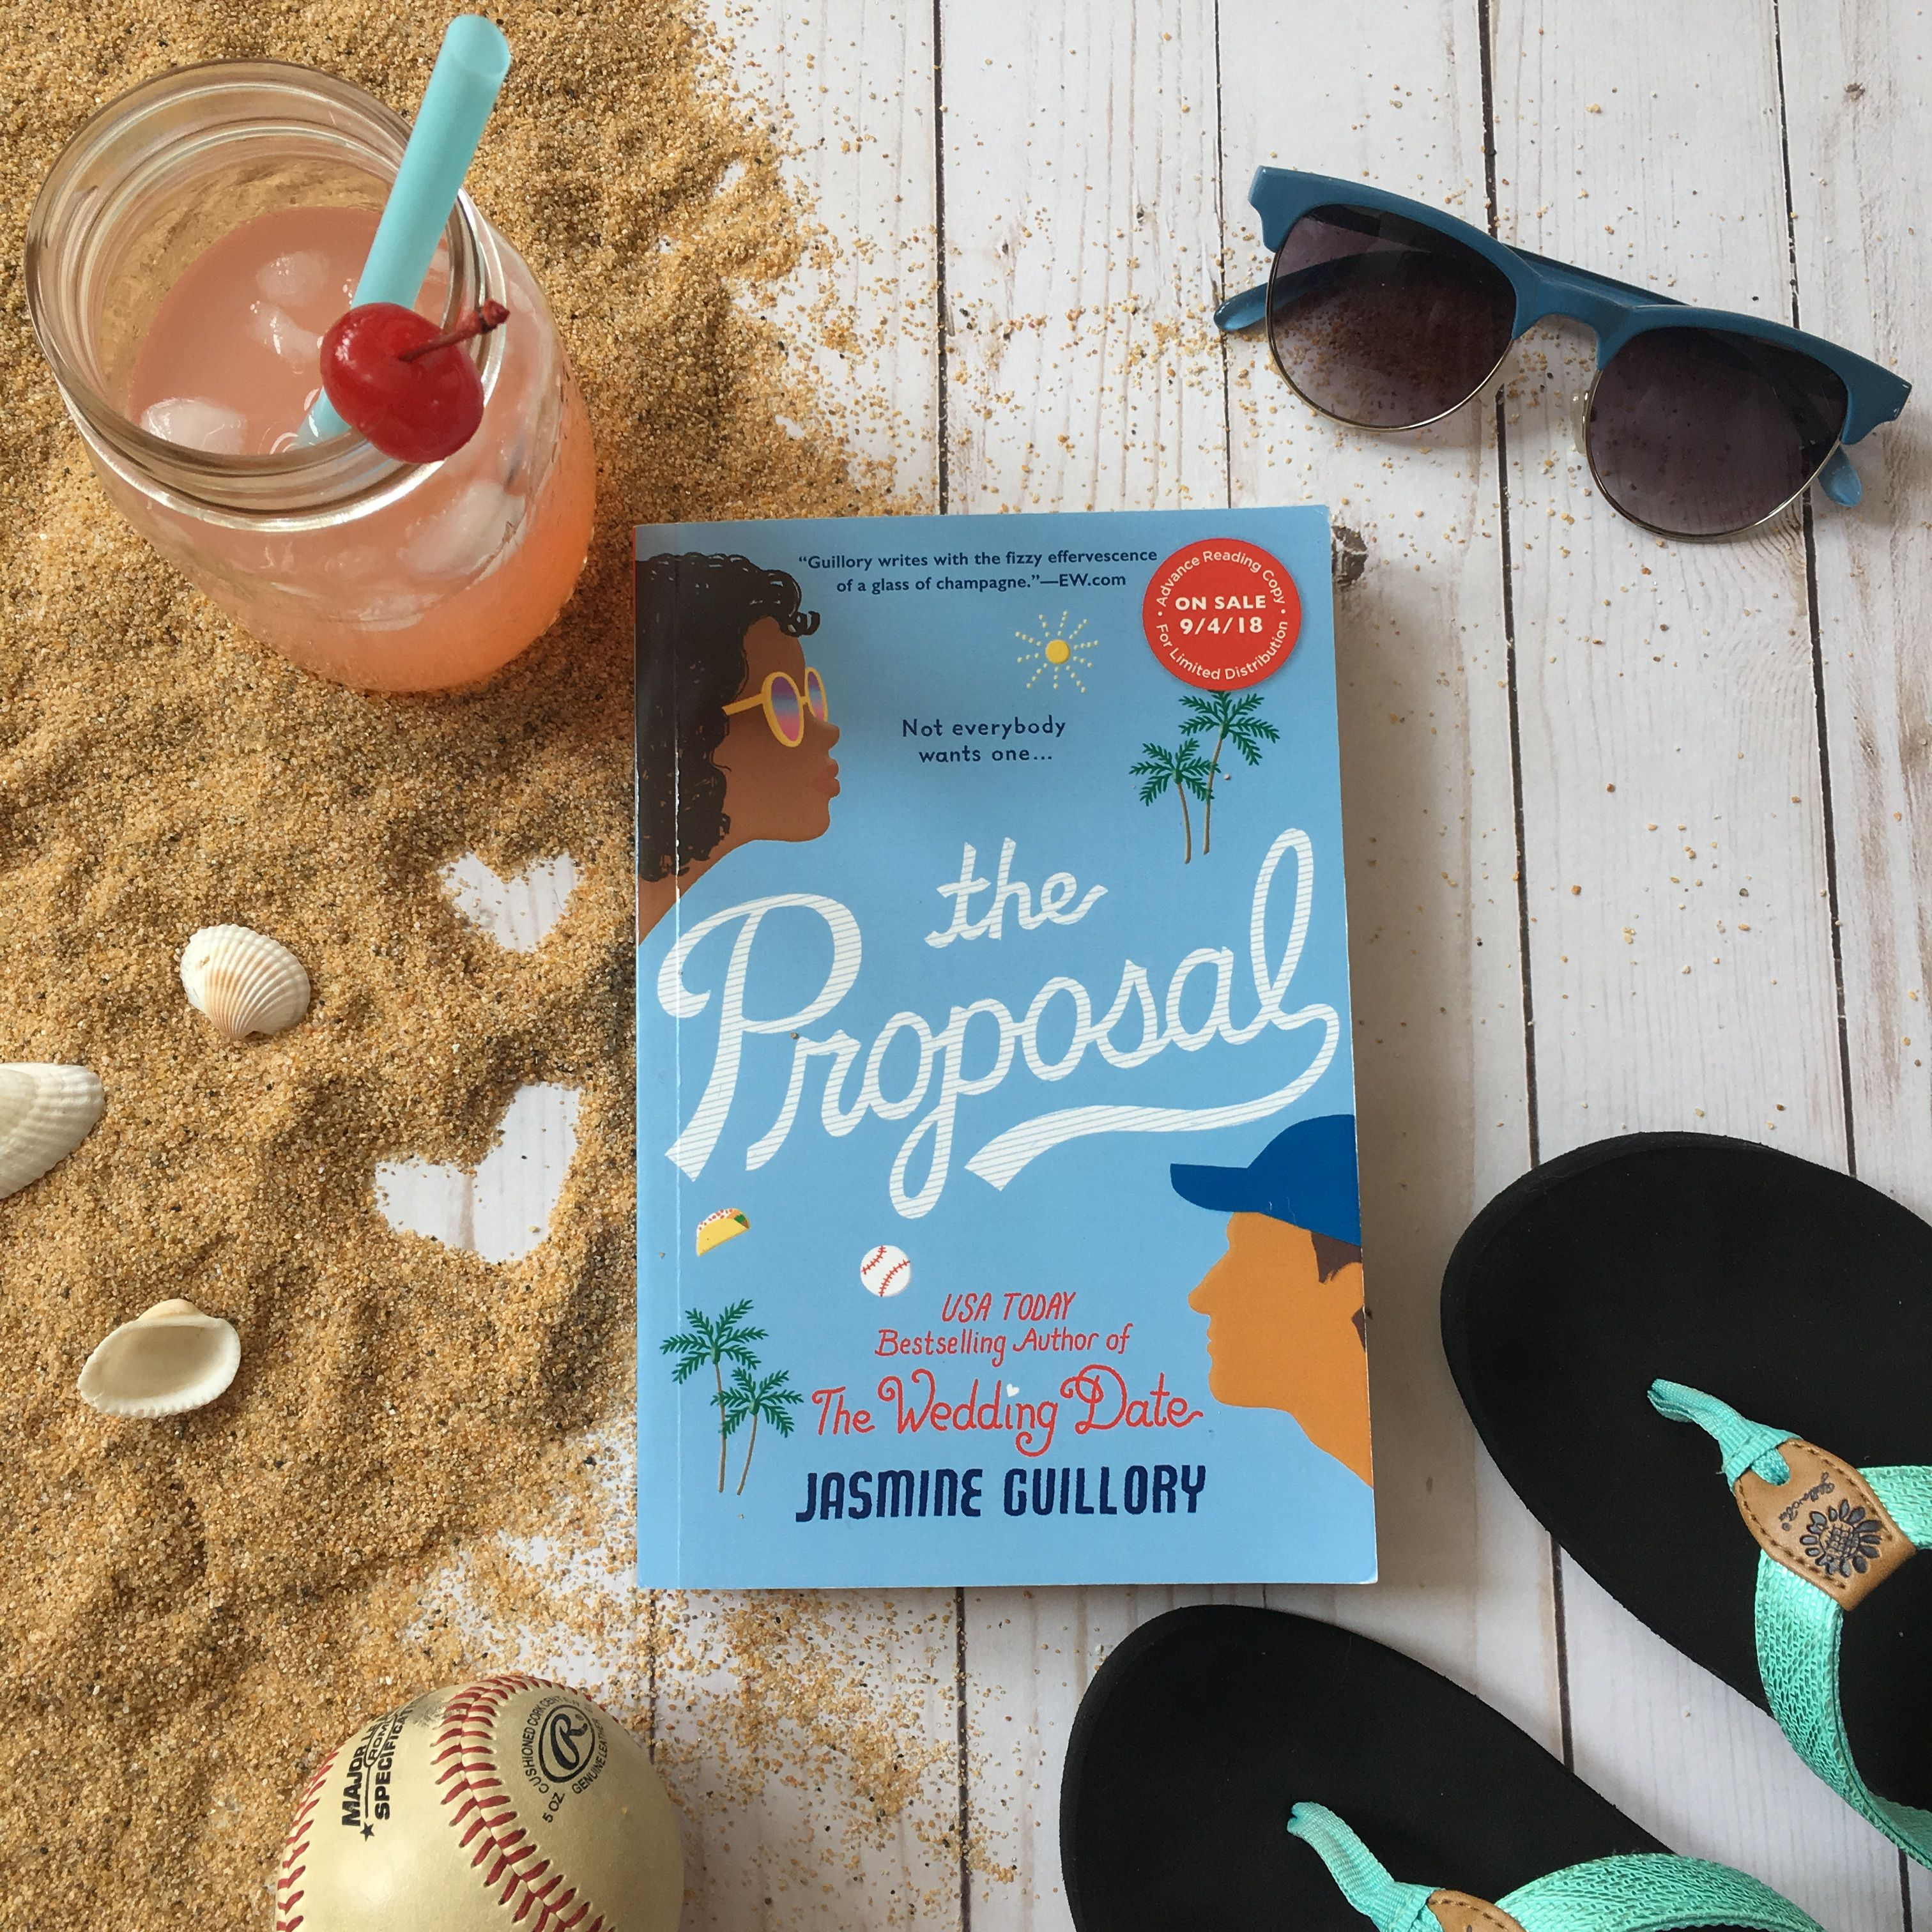 THE PROPOSAL by Jasmine Guillory bookstagram